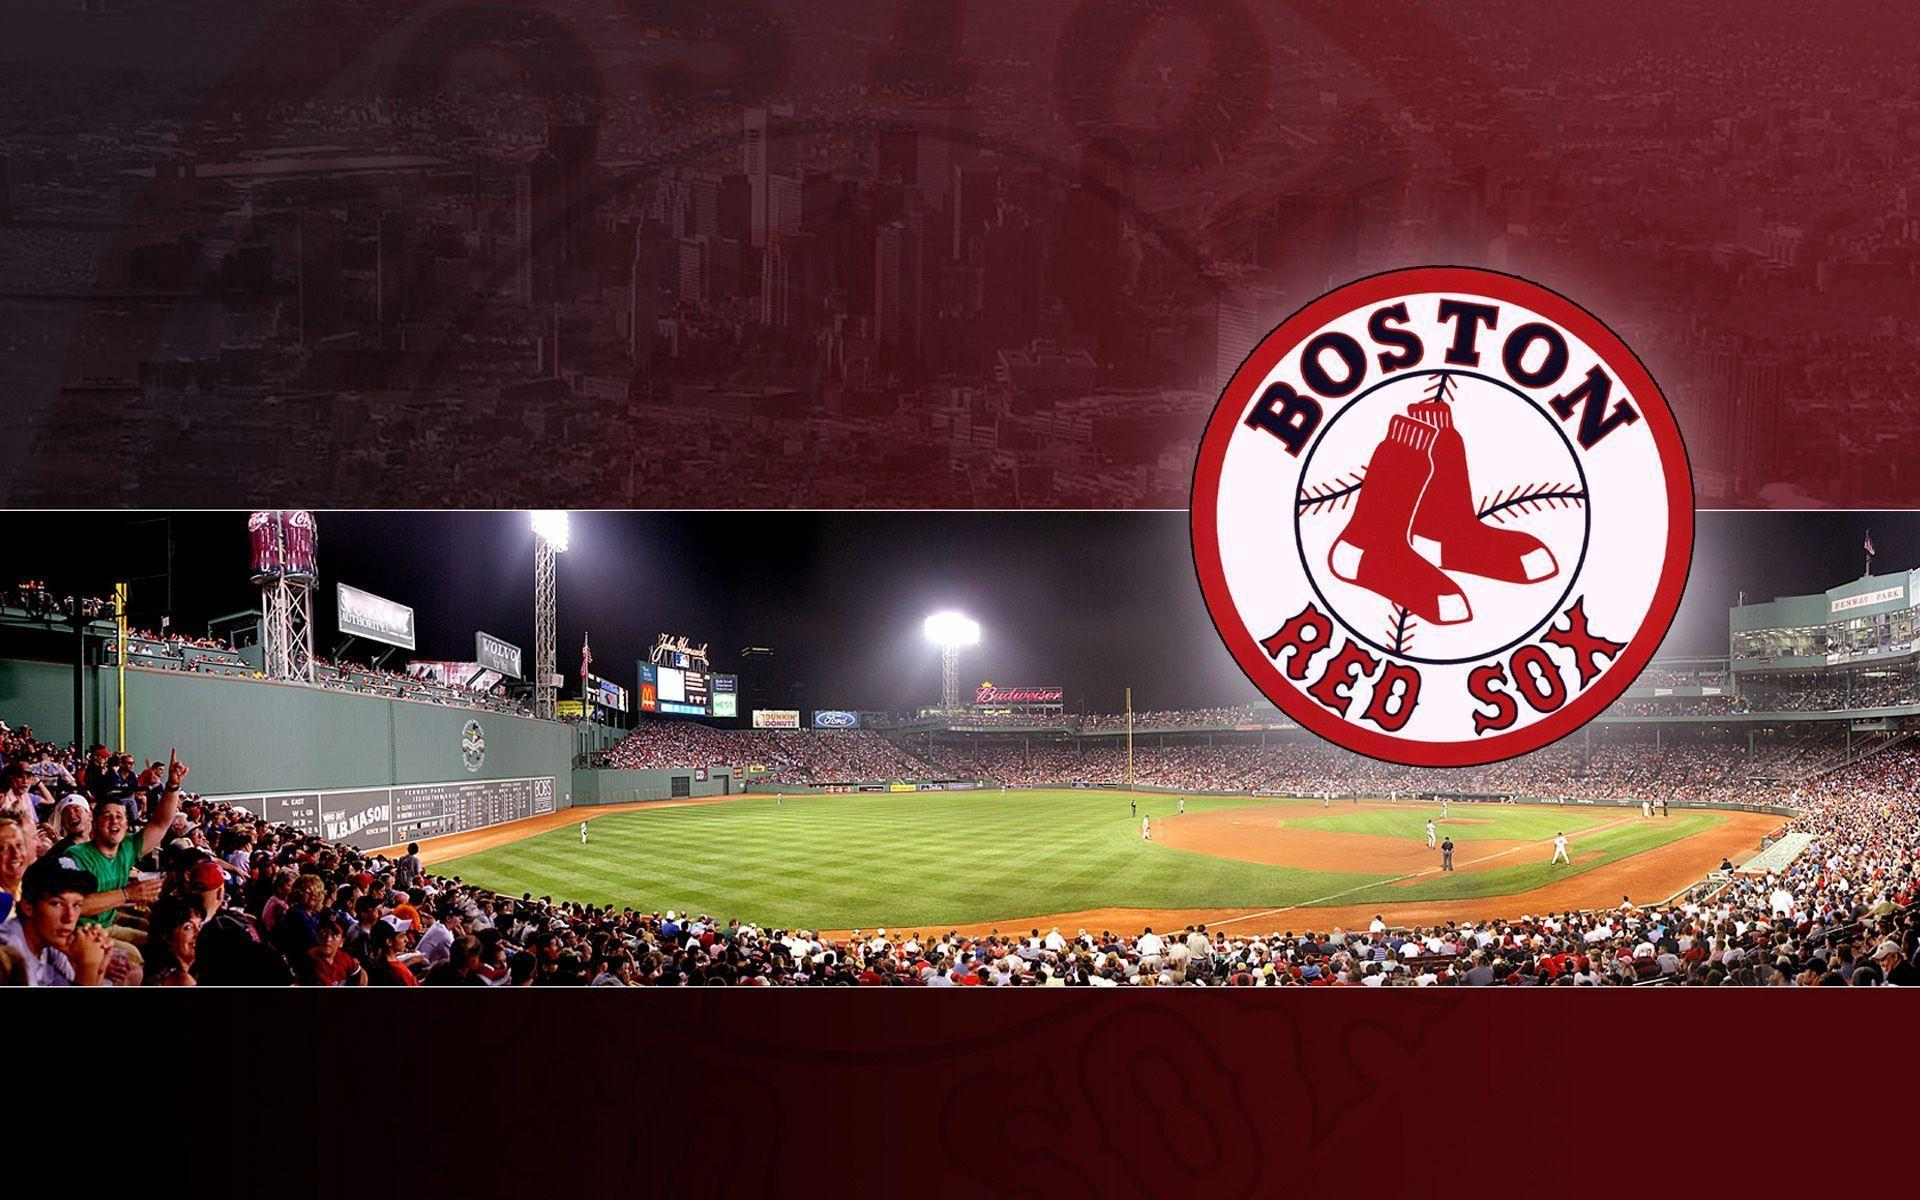 boston red sox wallpaper widescreen -#main